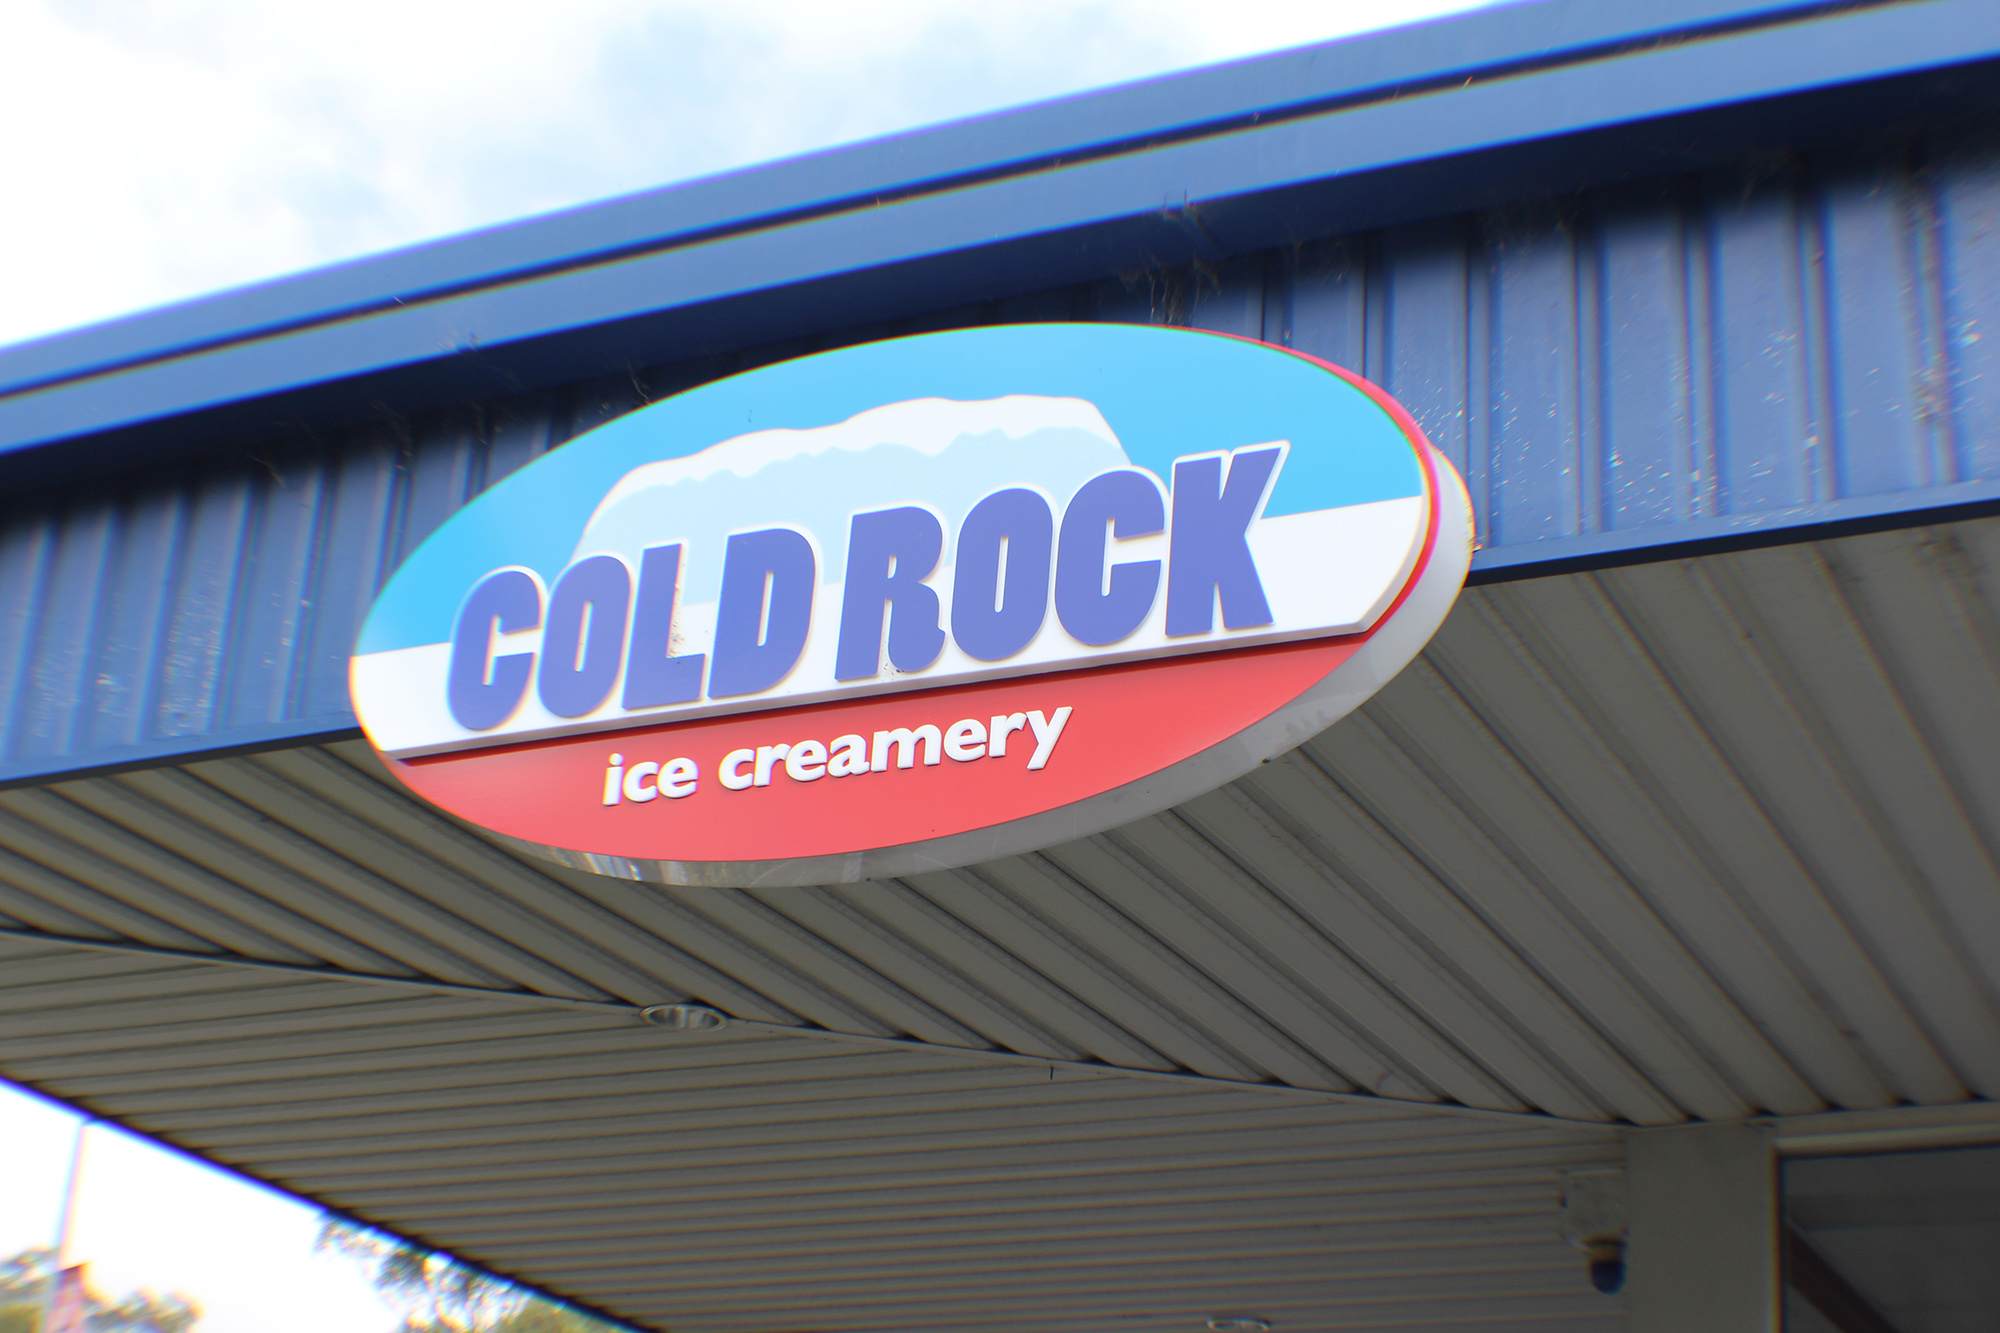 Cold Rock Ice creamery Penrith  (10)